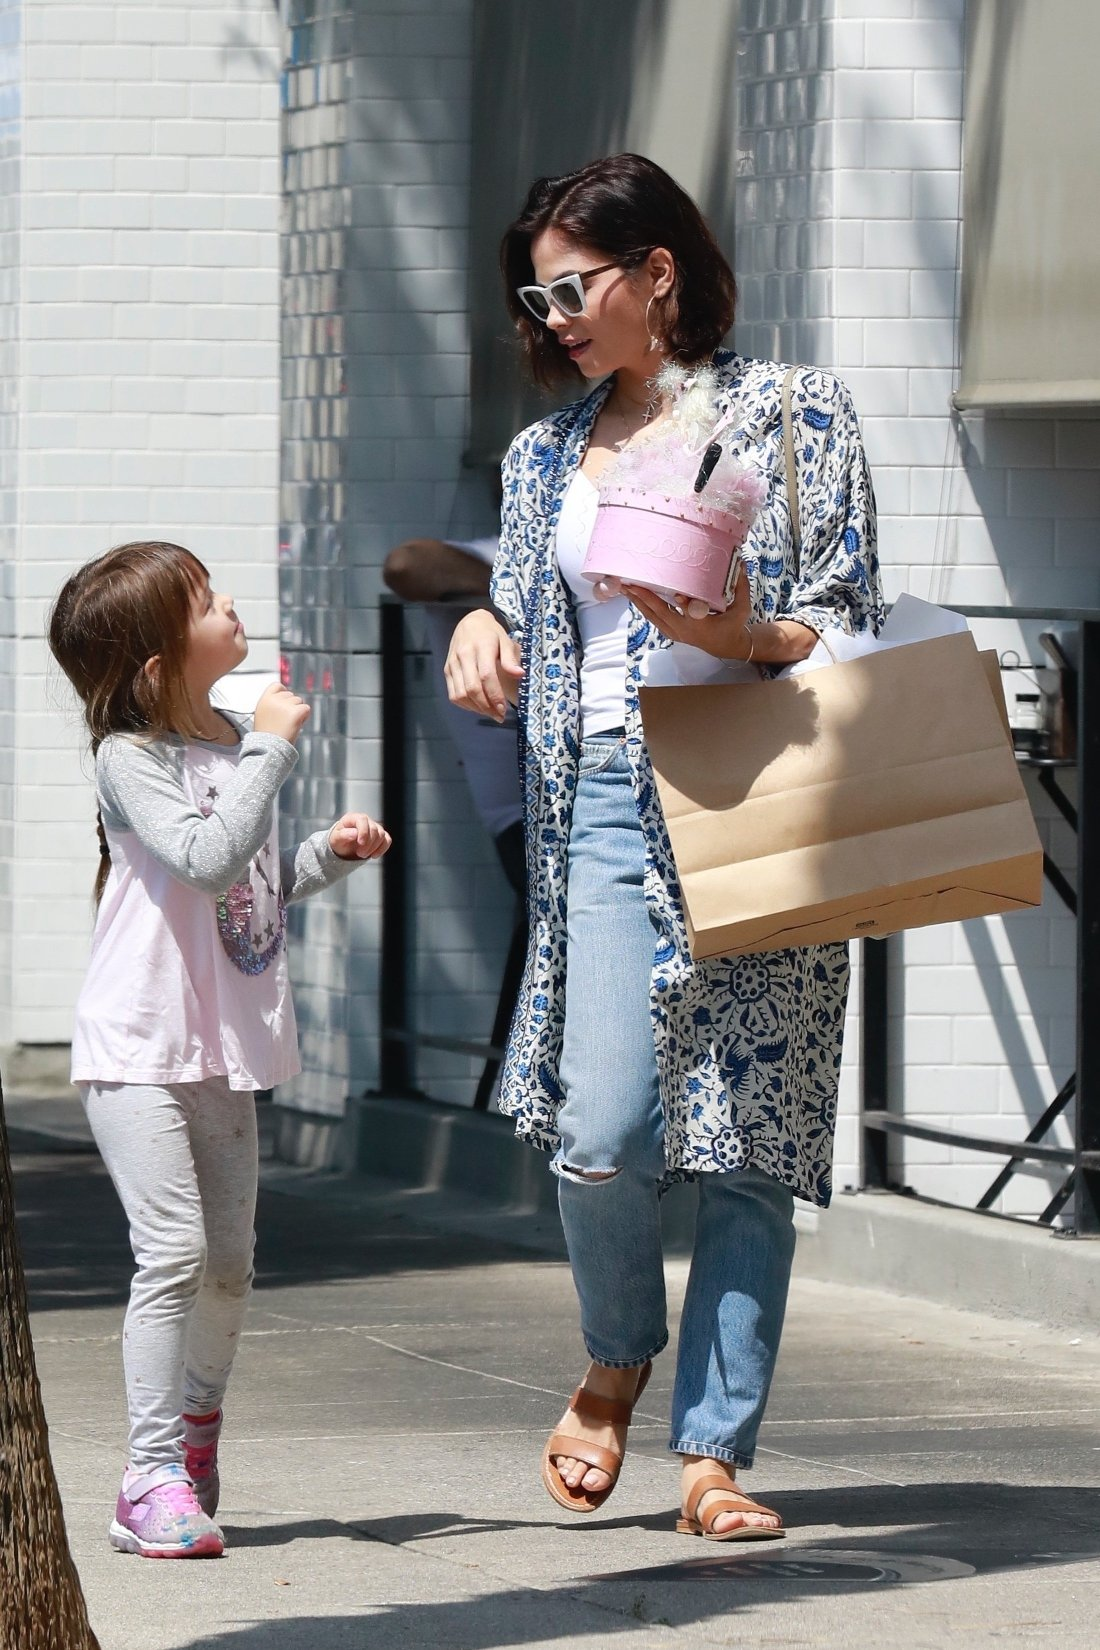 Studio City, CA  - *EXCLUSIVE*  - Jenna Dewan takes a day off from filming her TV show 'The Resident' to the Labor Day holiday and take her daughter Everly shopping in Studio City. The actress and dancer and ran into friends while out and stopped to pet their dog before hitting the stores.  Pictured: Jenna Dewan, Everly Tatum    *UK Clients - Pictures Containing Children Please Pixelate Face Prior To Publication*, Image: 385187102, License: Rights-managed, Restrictions: , Model Release: no, Credit line: Profimedia, AKM-GSI